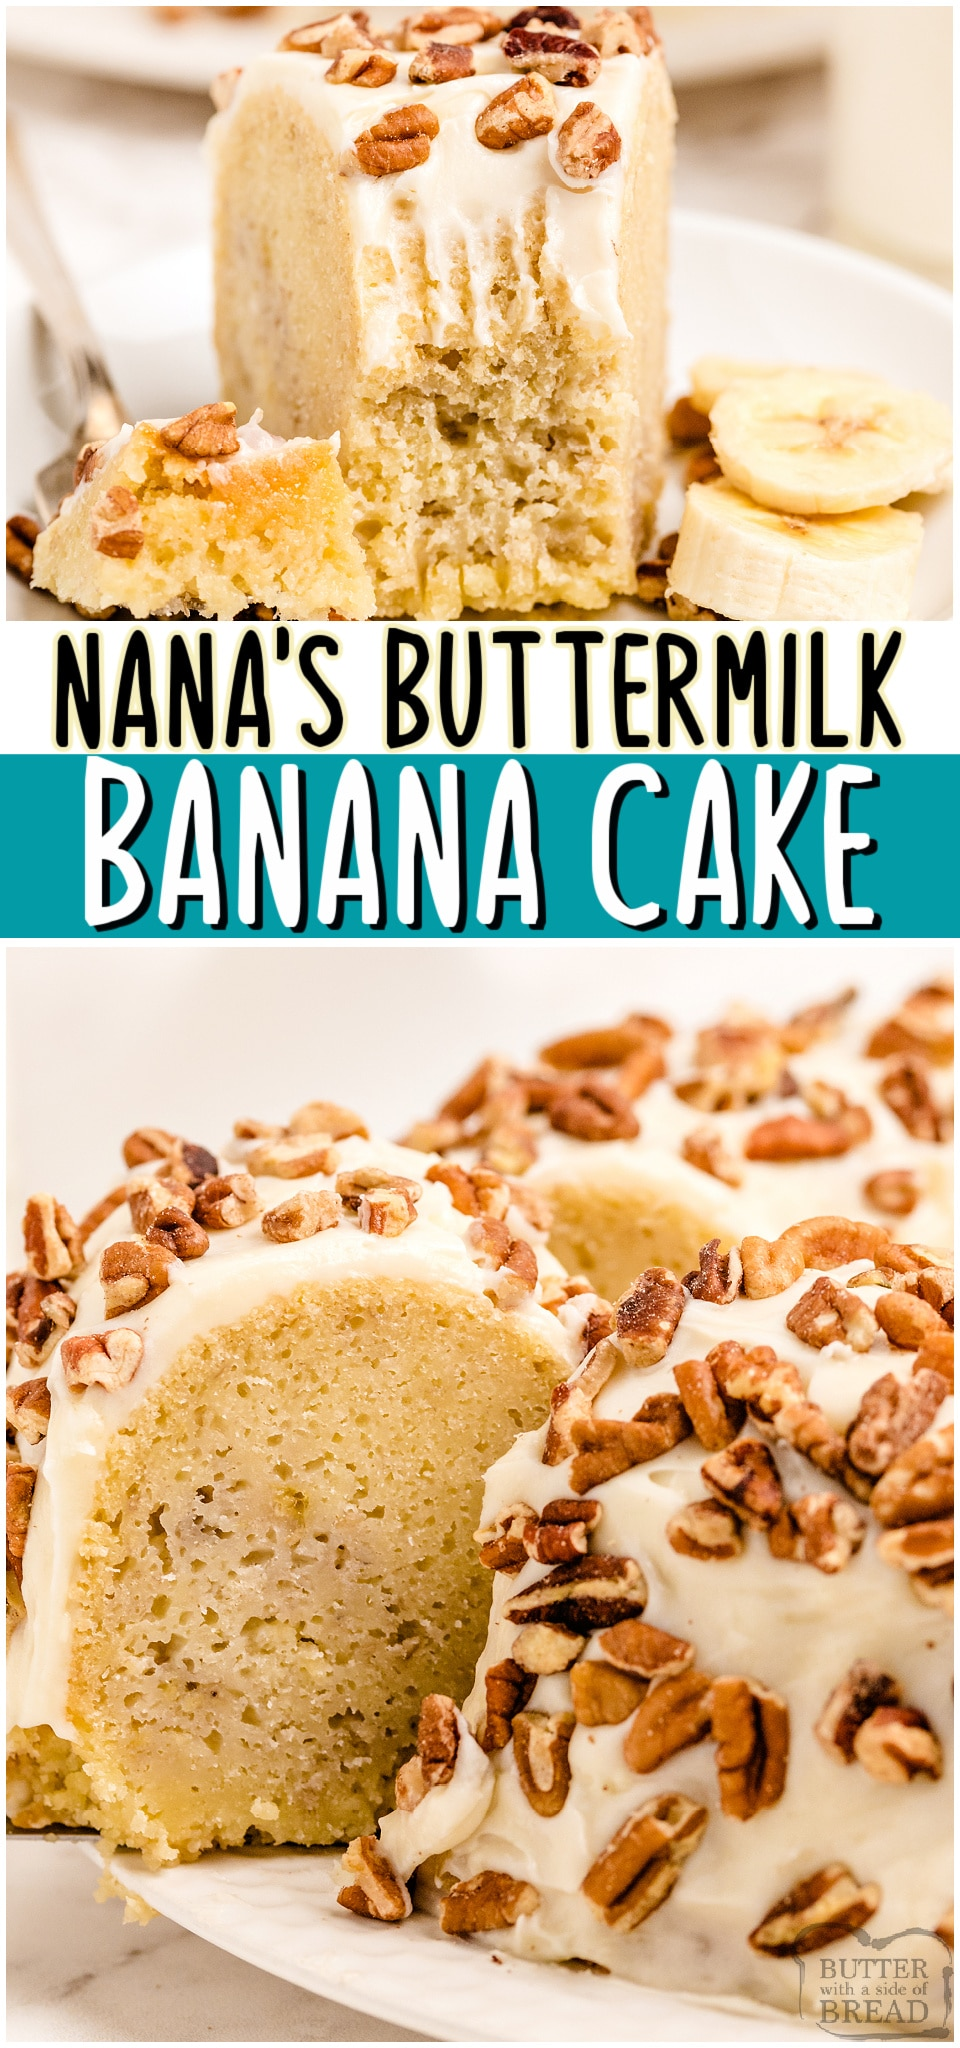 Buttermilk Banana Cake recipe topped with cream cheese frosting for anyone who loves bananas! Fantastic flavor in this moist banana cake- don't skimp on the frosting! Best banana pound cake made with butter, ripe bananas, & buttermilk. #cake #buttermilk #banana #dessert #easyrecipe from BUTTER WITH A SIDE OF BREAD